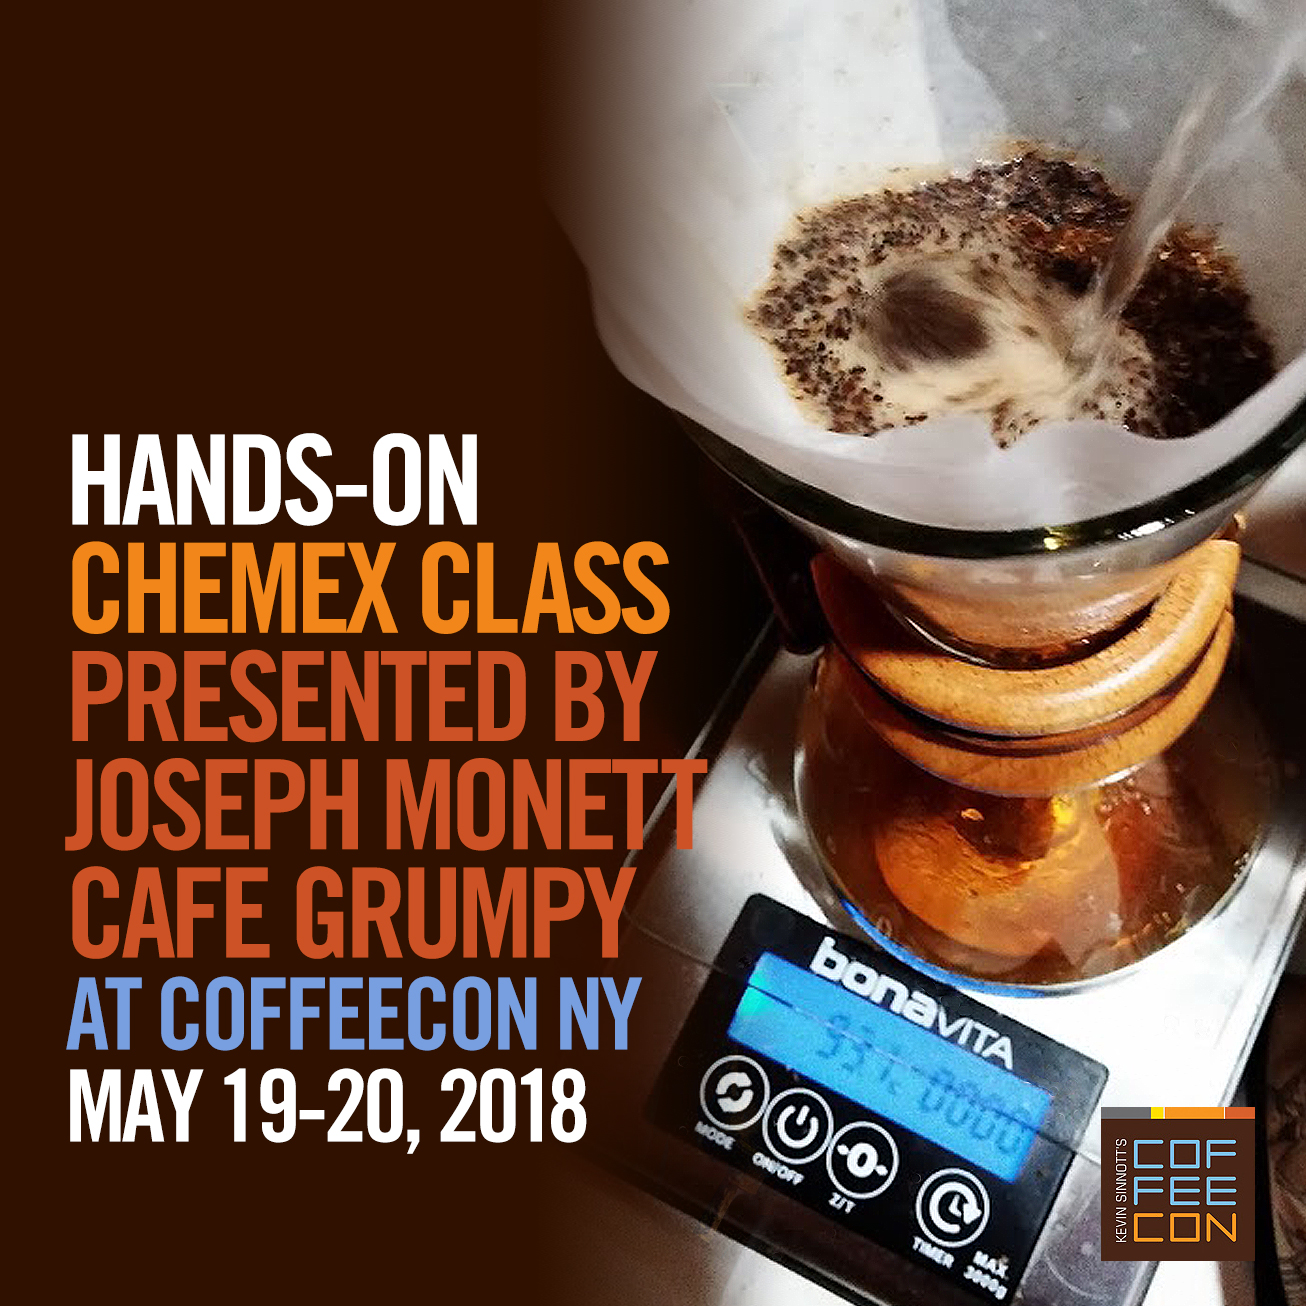 Hands-on Chemex class presented by Joseph Monett